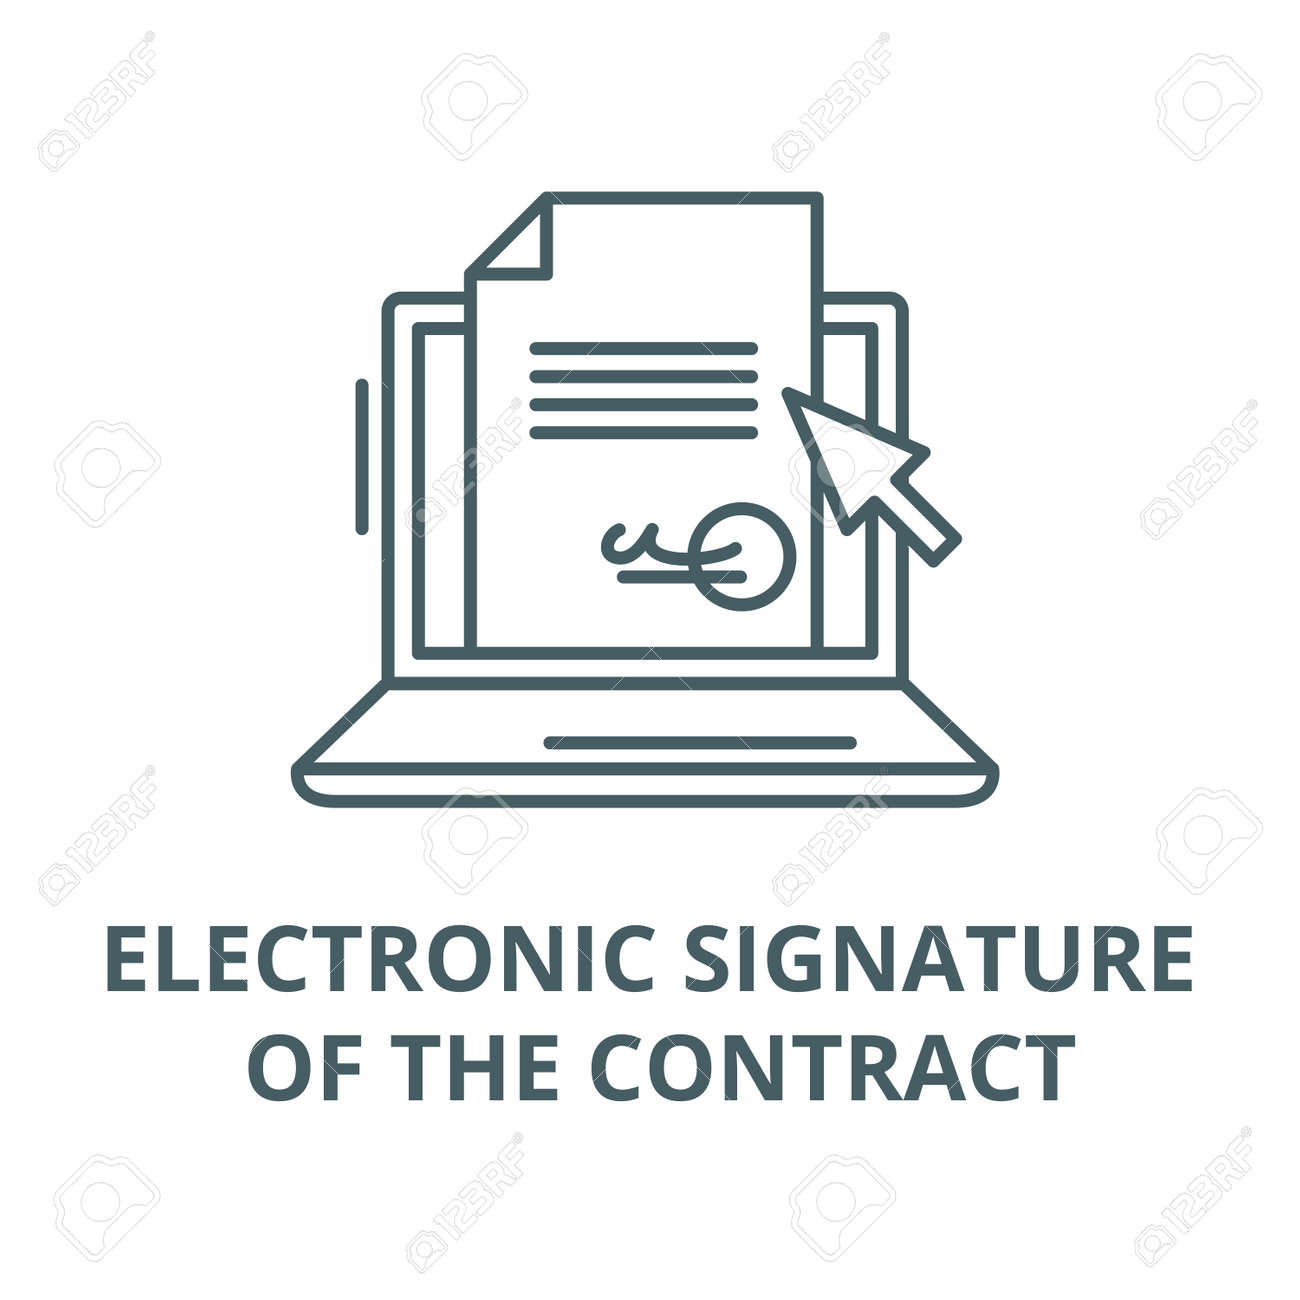 Electronic signature of the contract vector line icon, outline concept, linear sign - 122419128